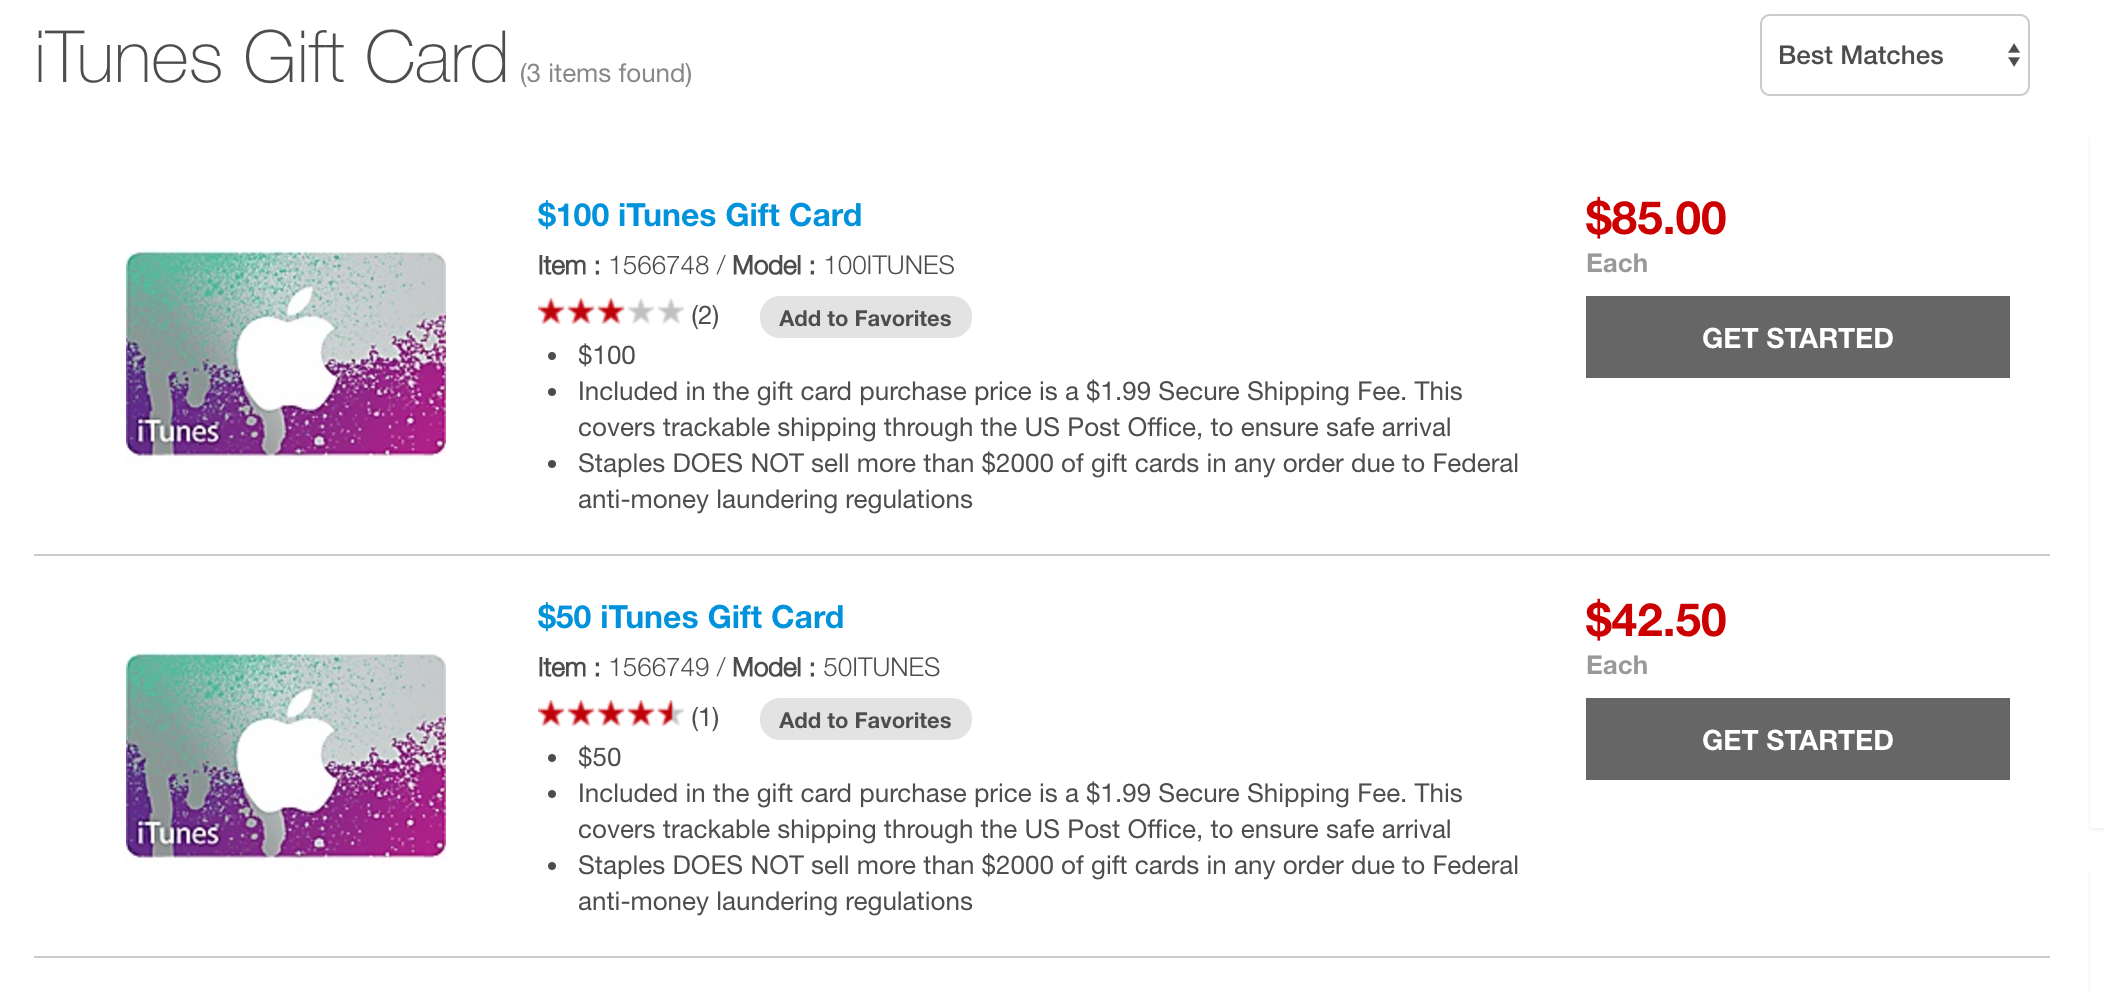 itunes-gift-card-23